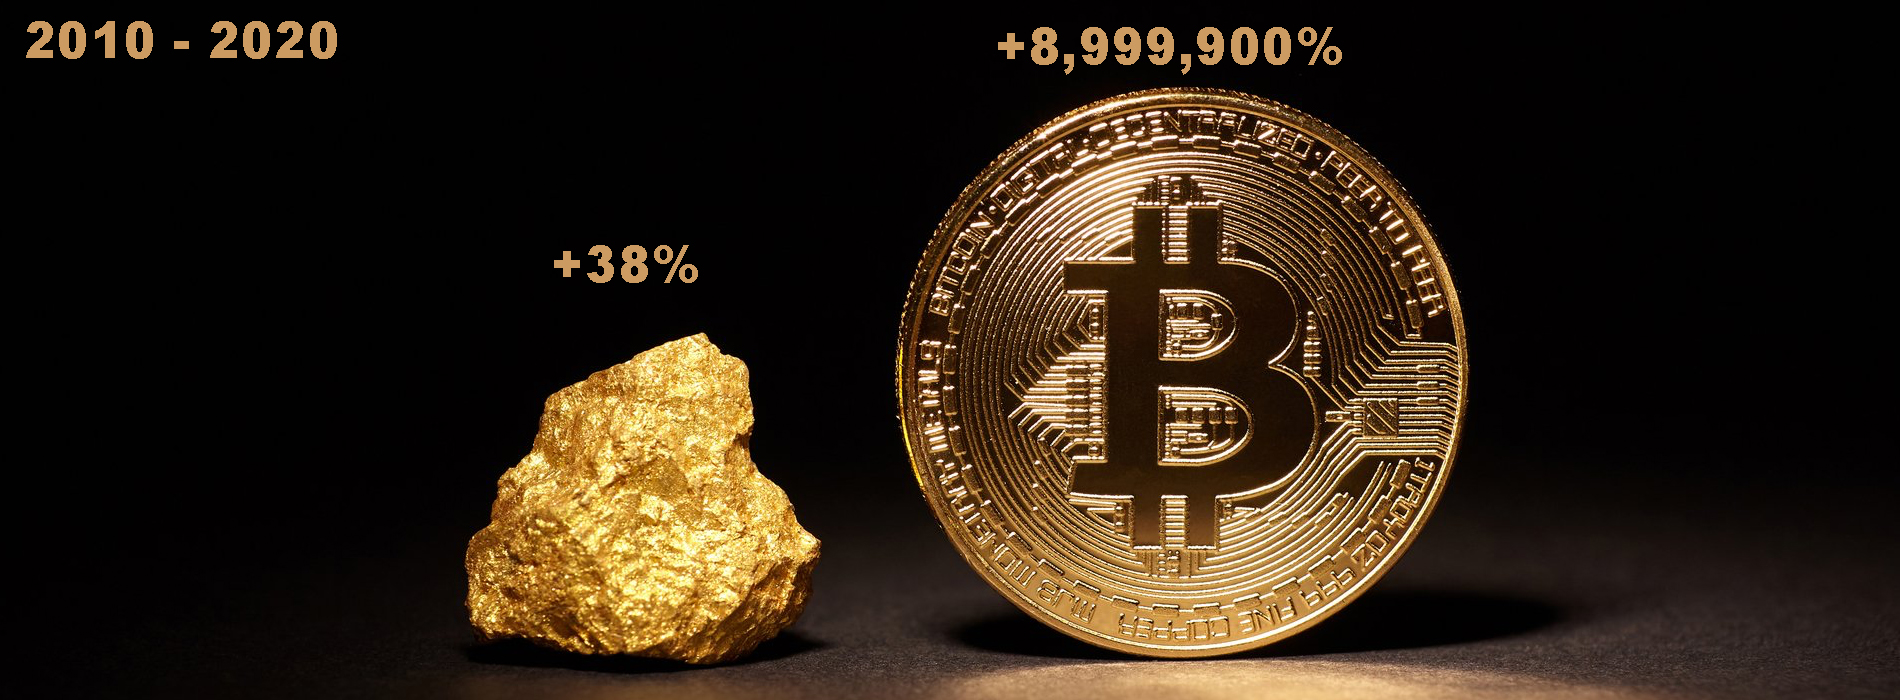 Bitcoin Gained 8.9 Million Percent Over the Last Decade